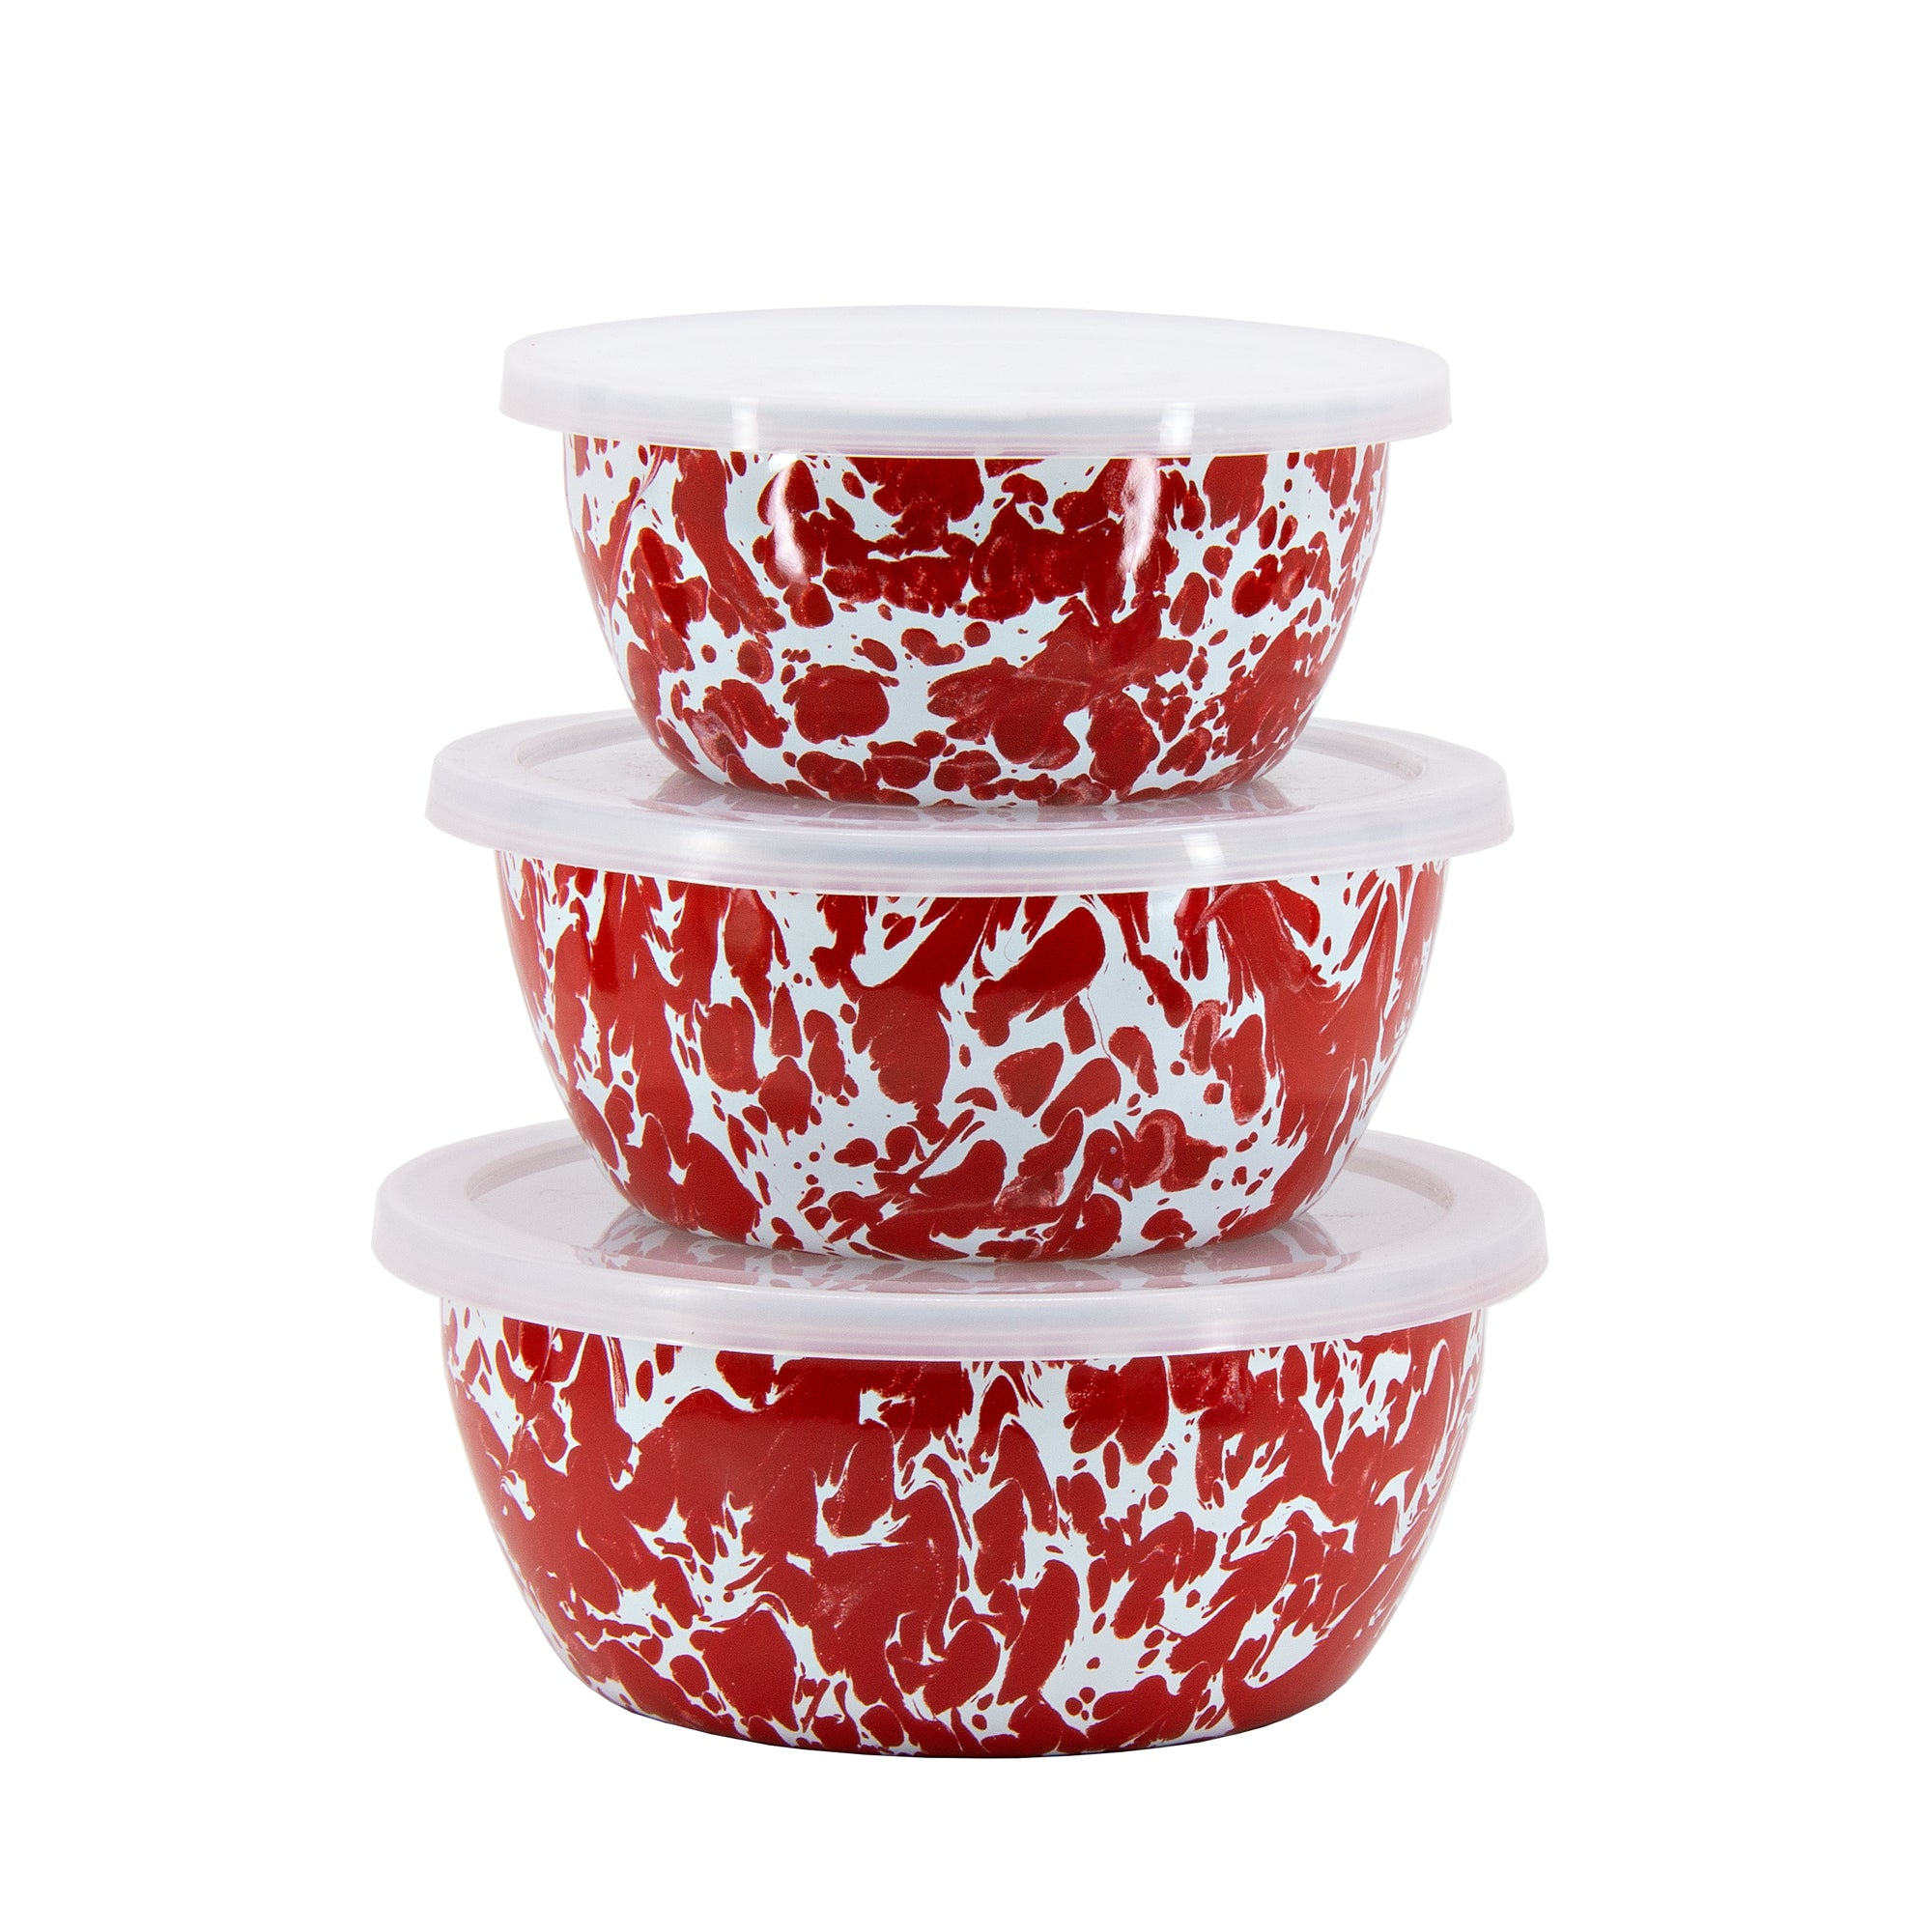 RD30 - Red Swirl Nesting Bowls Image 2